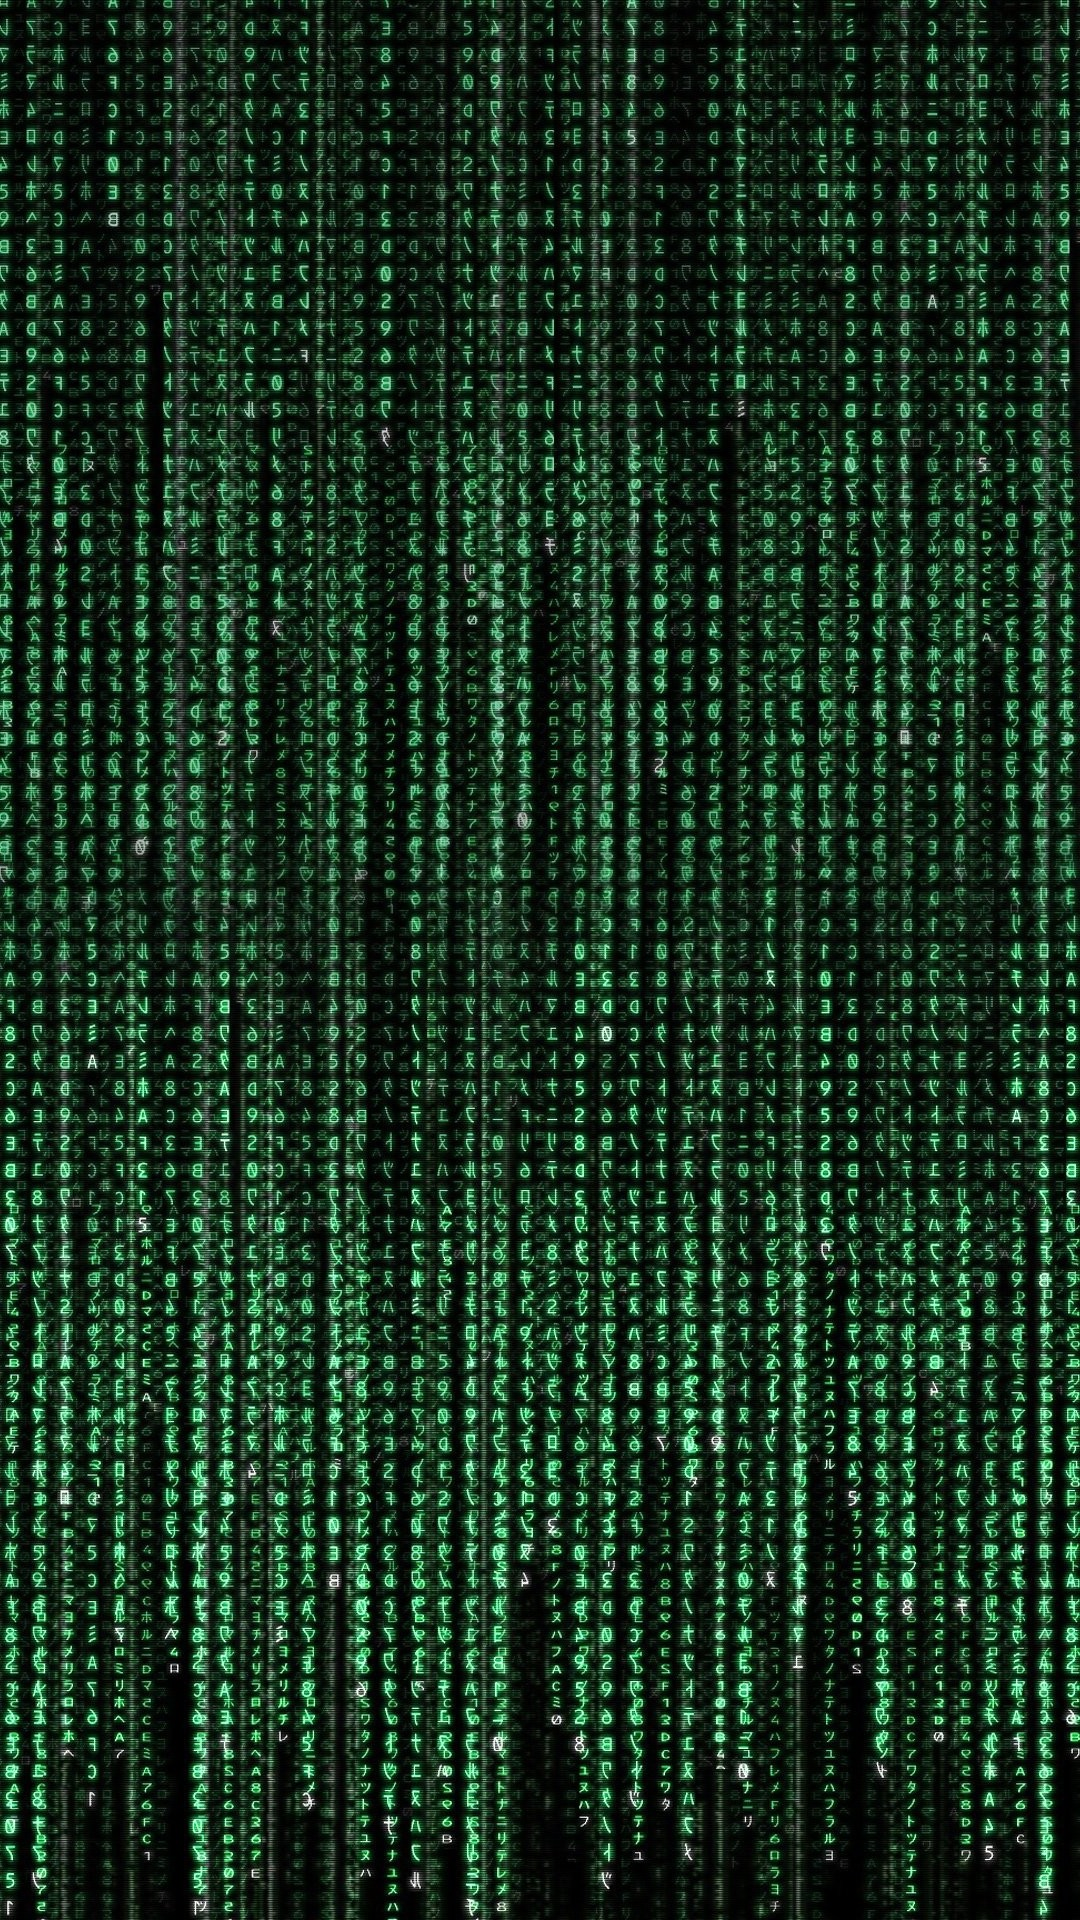 Matrix Falling Code Wallpaper Download Digital Art Portrait Display Cgi The Matrix Text